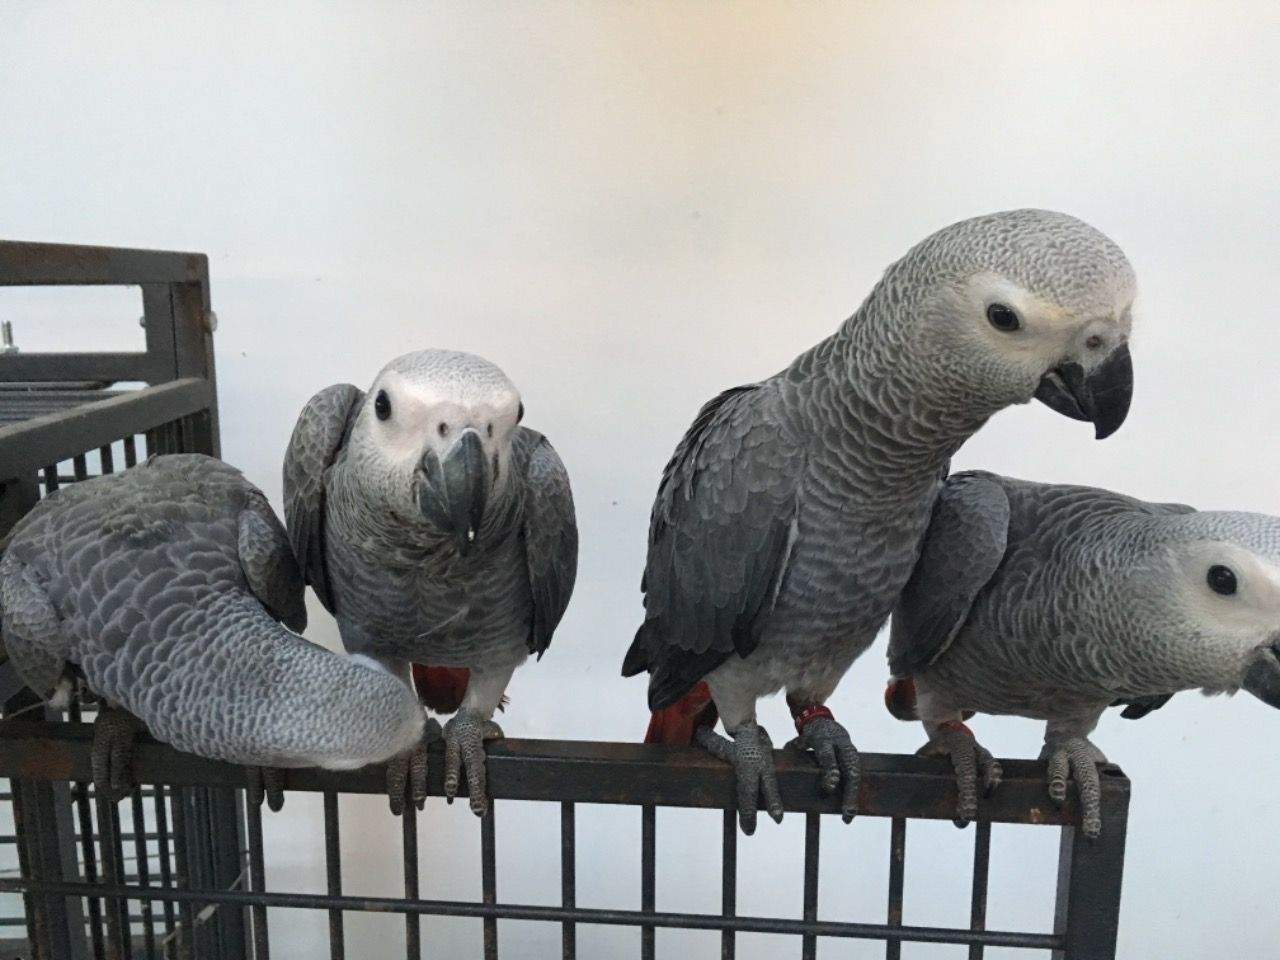 Talking African Grey parrots for sale classified at New India